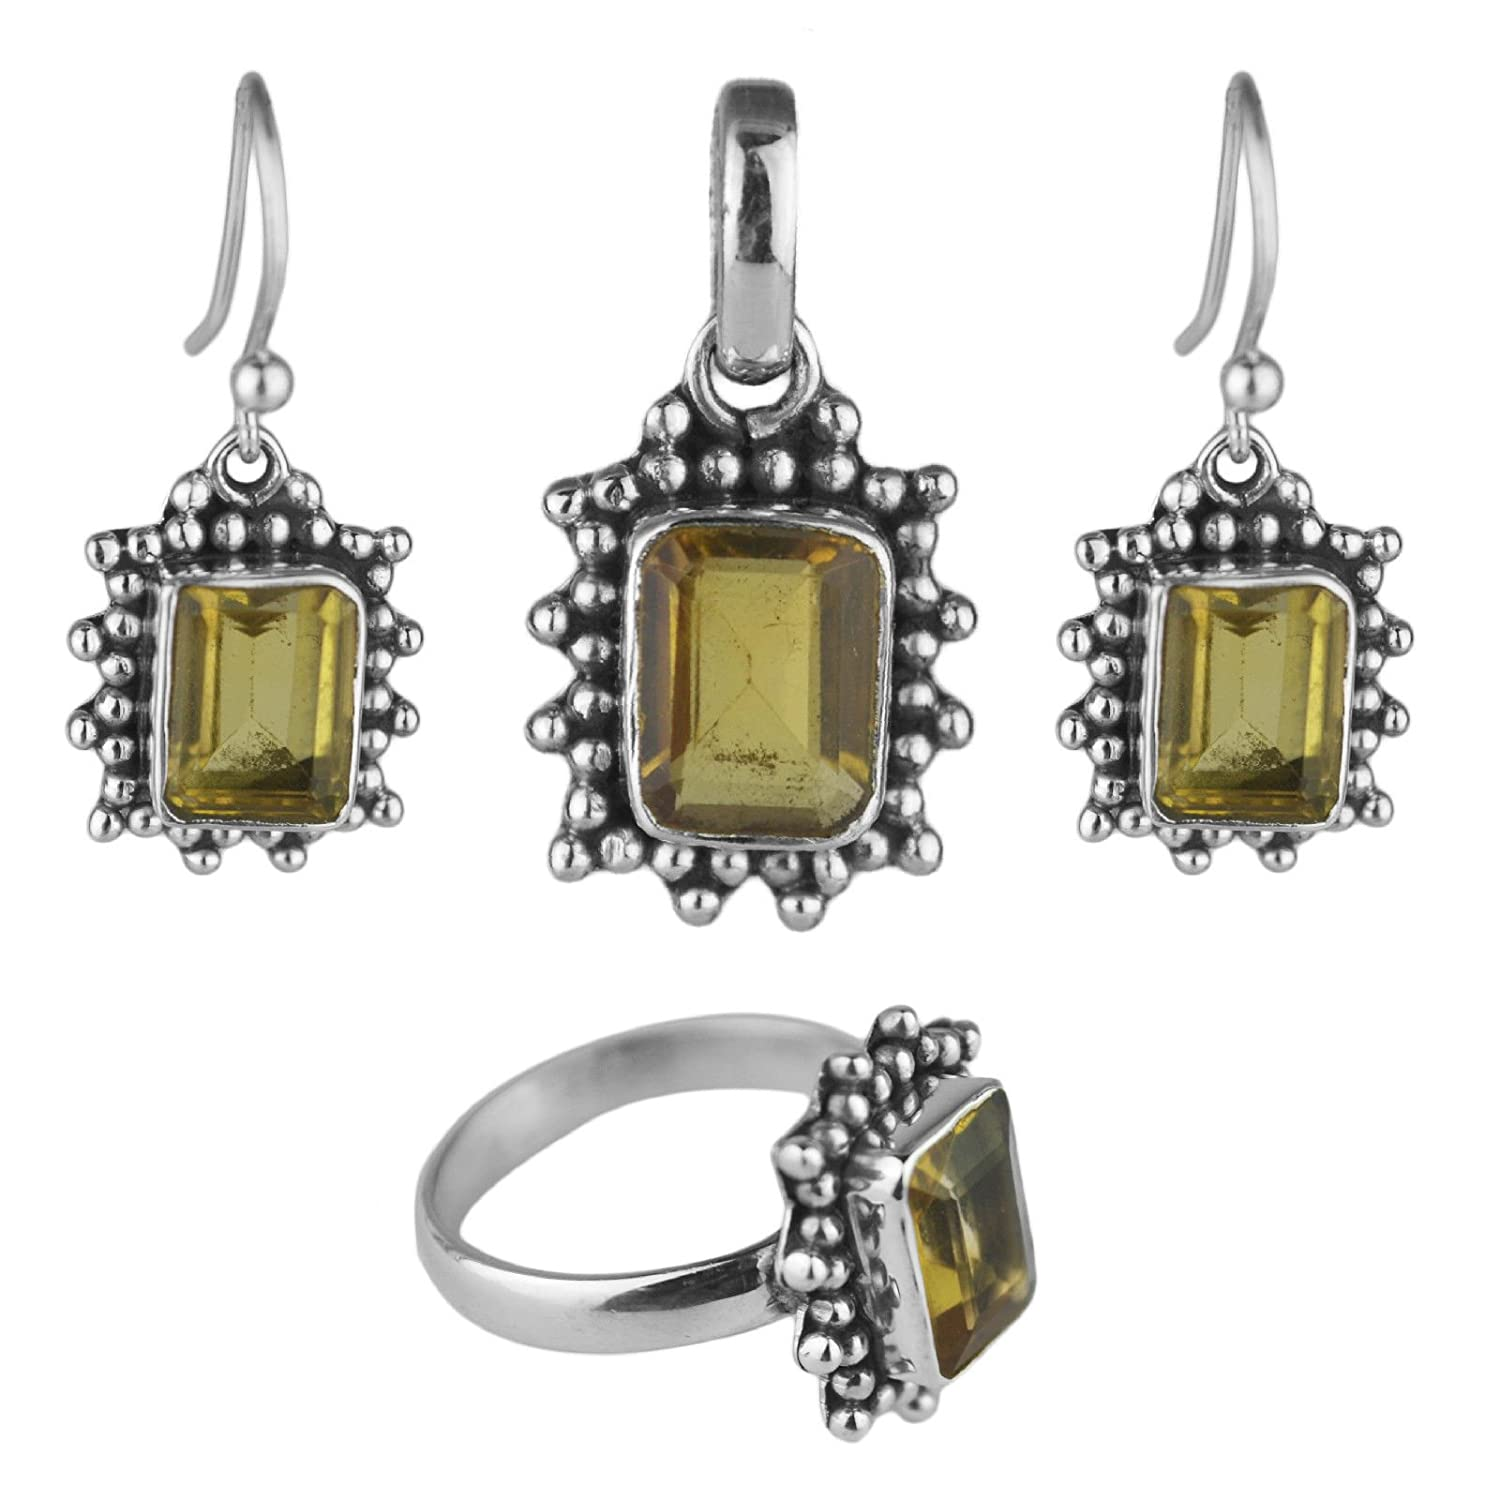 Crystalcraftindia Natural citrine gemstone jewelry set pendant ring earring sterling silver 11.16 gms c